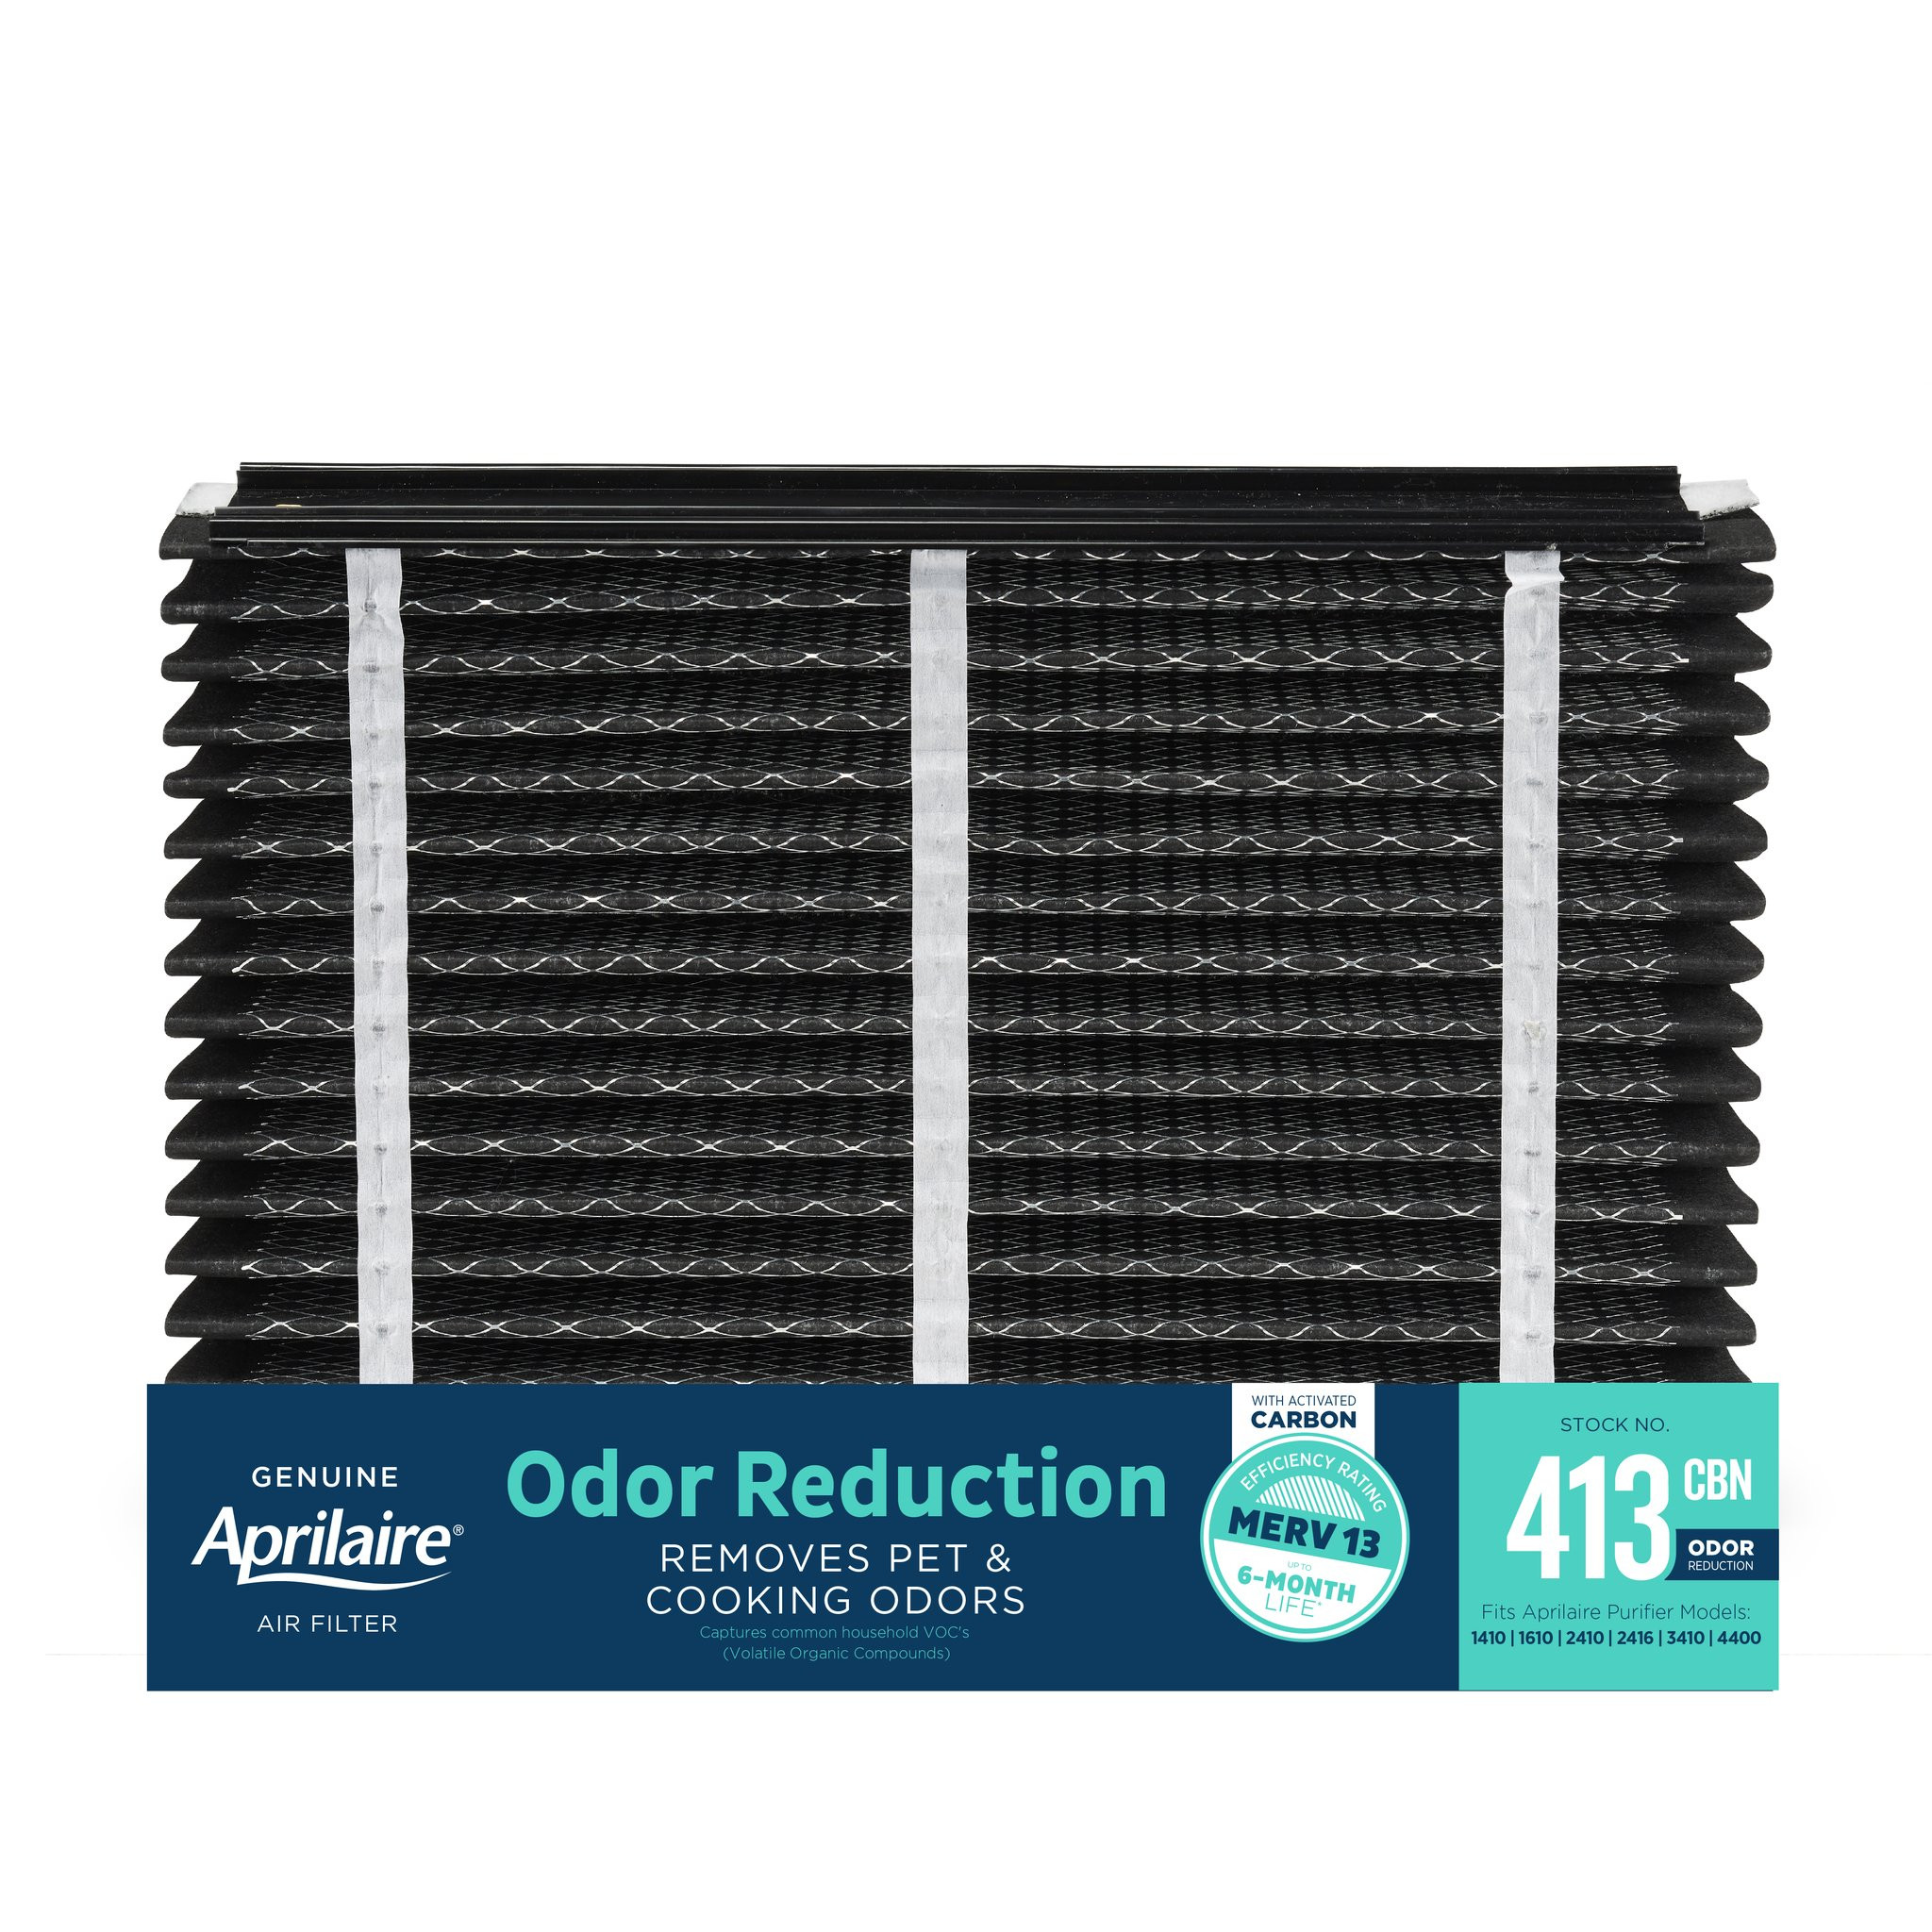 Aprilaire 413-CBN Odor Reduction Filter Replacement for Whole-Home Air Purifiers, MERV 13 with Activated Carbon